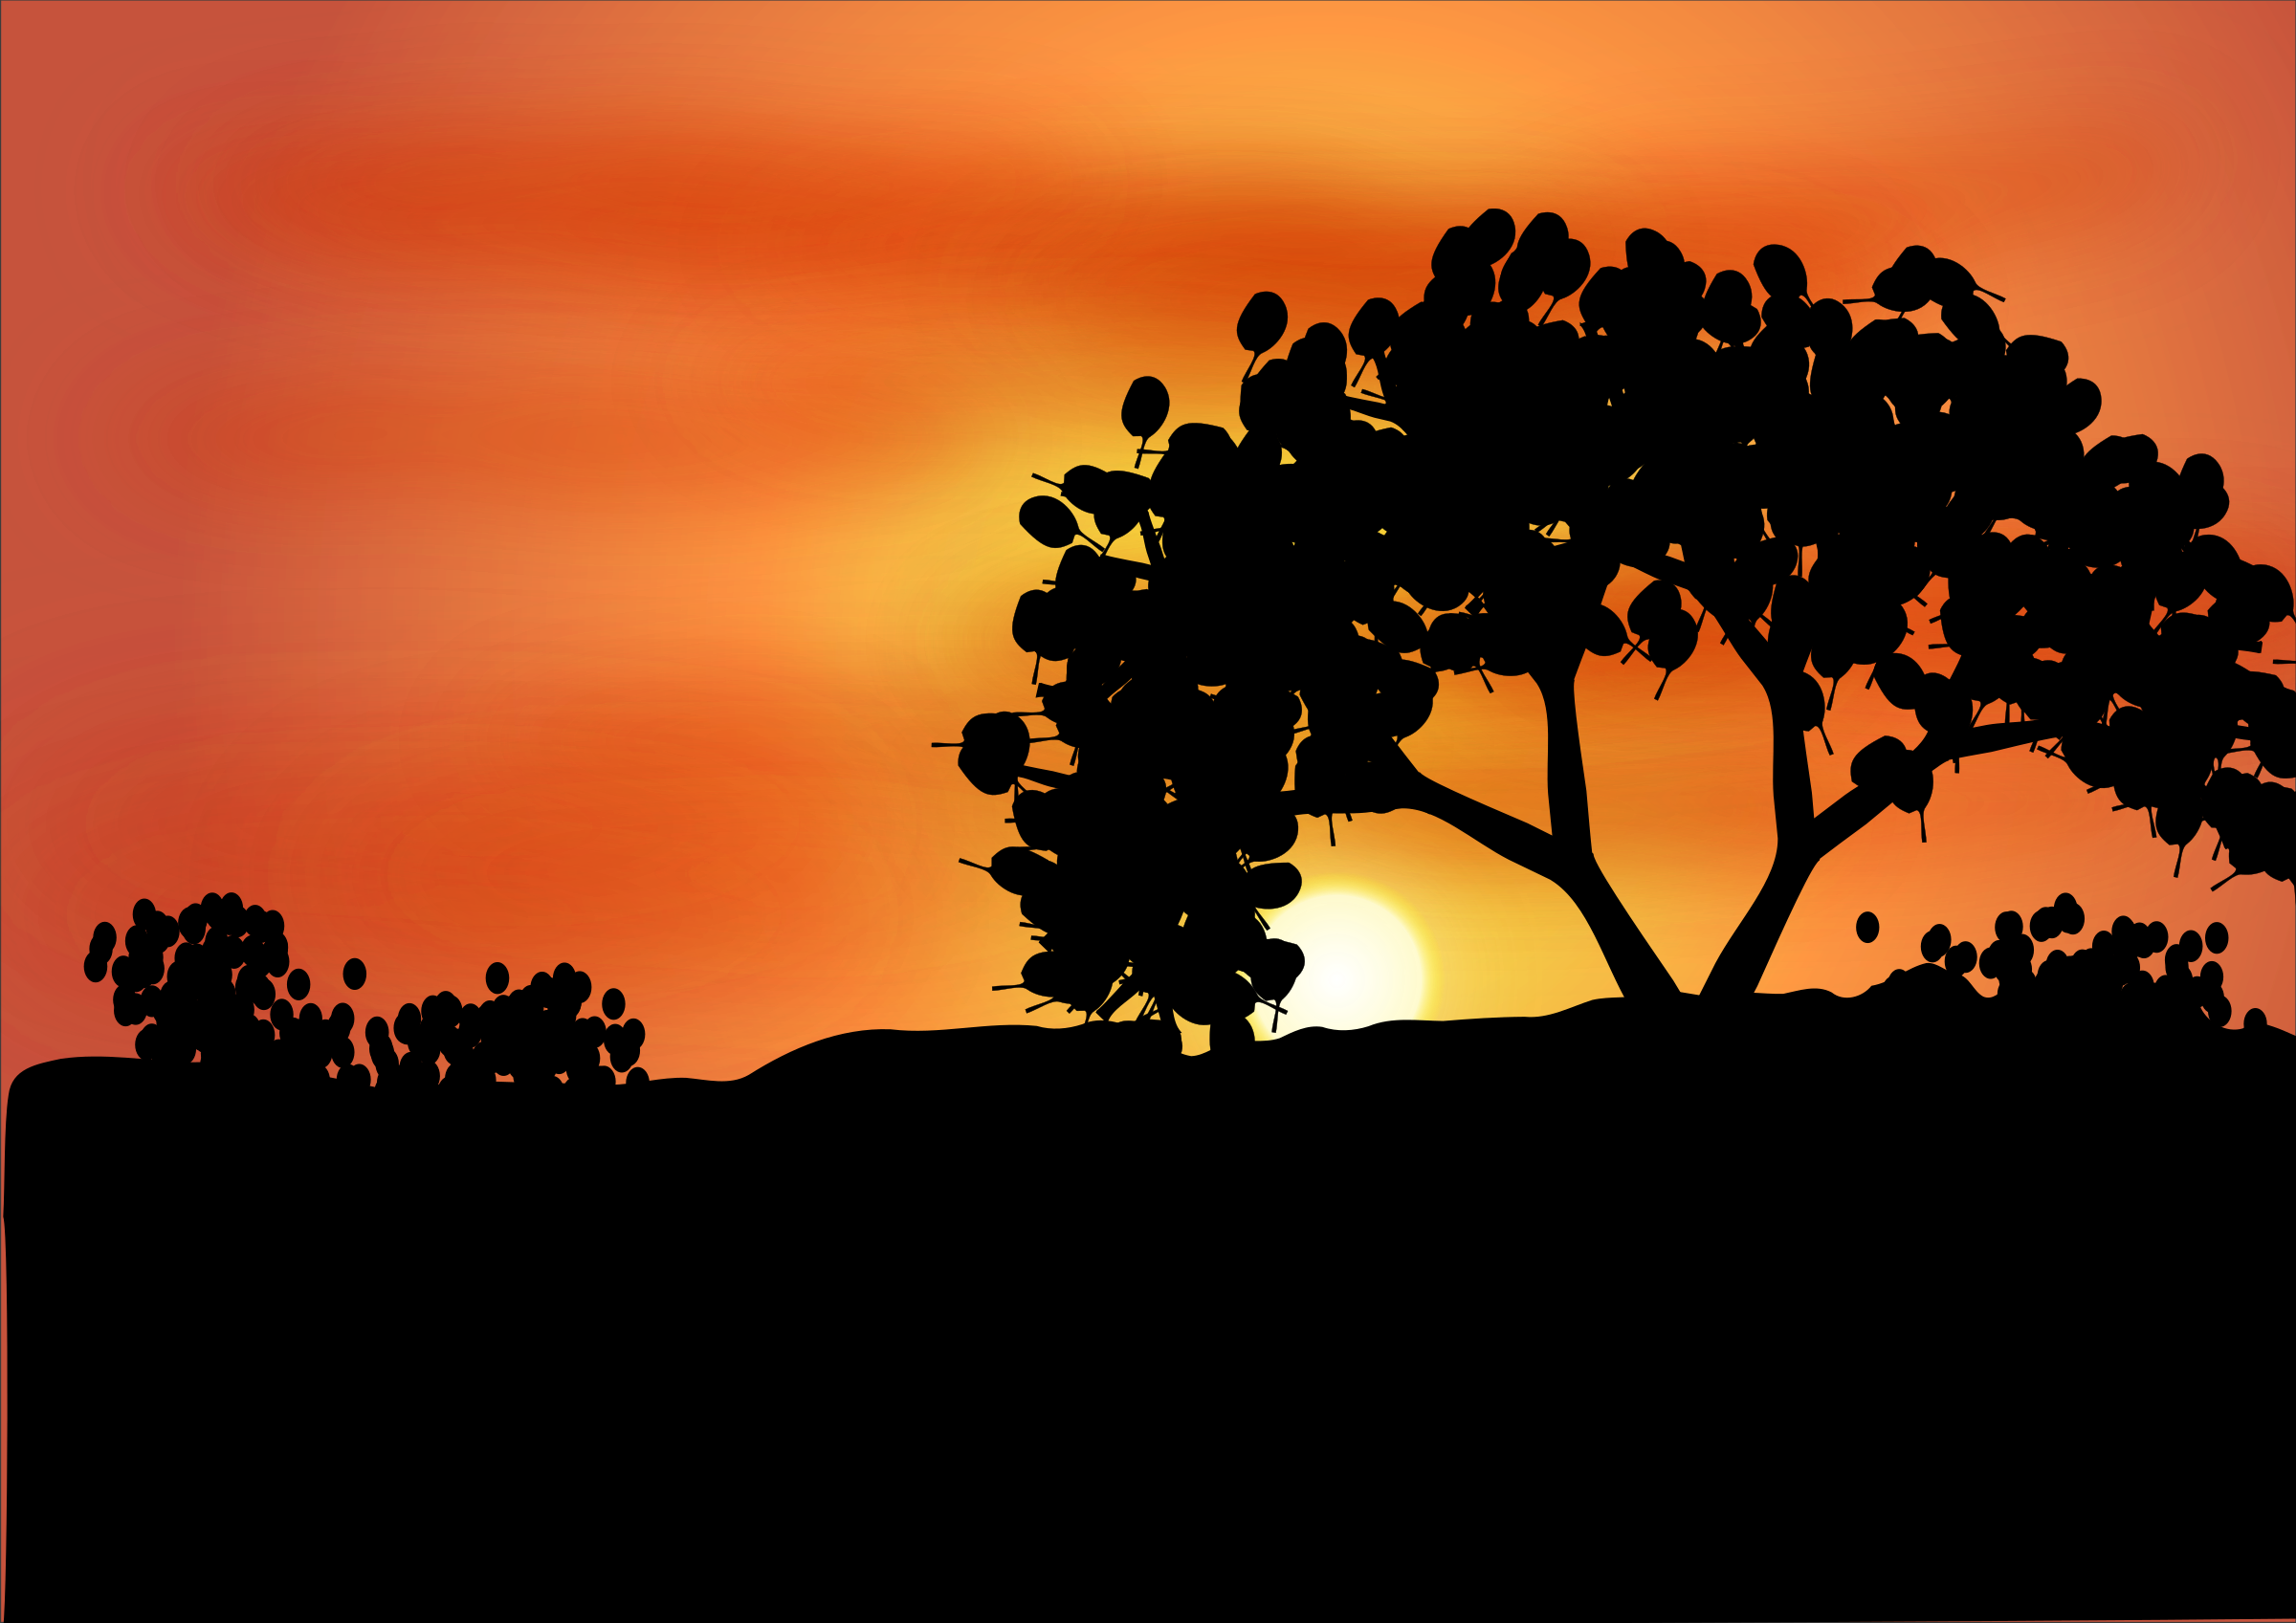 Sunset clipart sunset landscape. Amanecer big image png